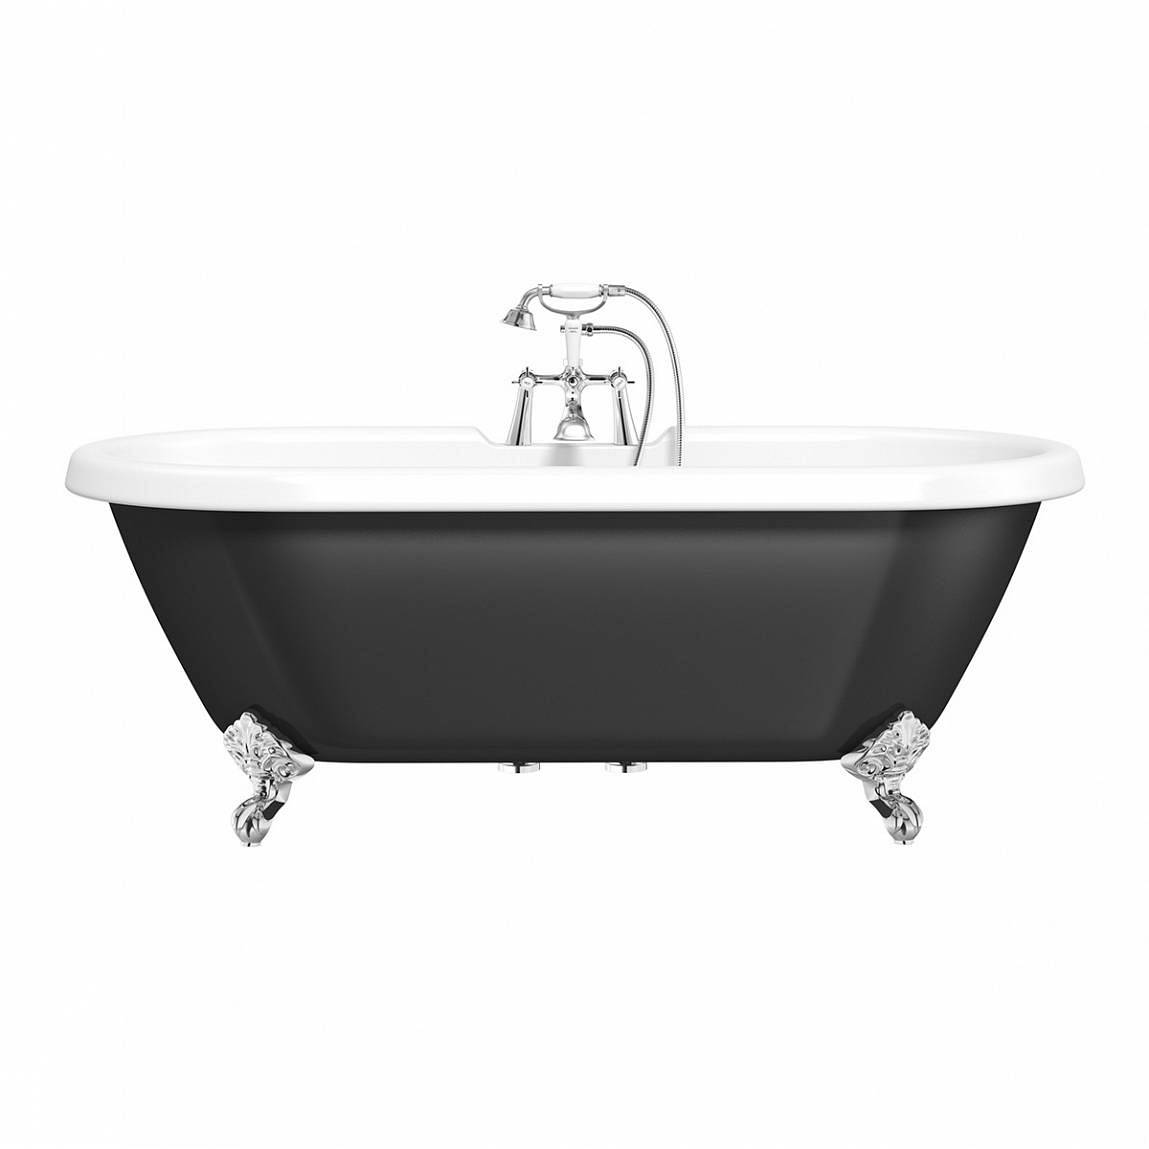 Image of Shakespeare Black Roll Top Bath with Ball Feet